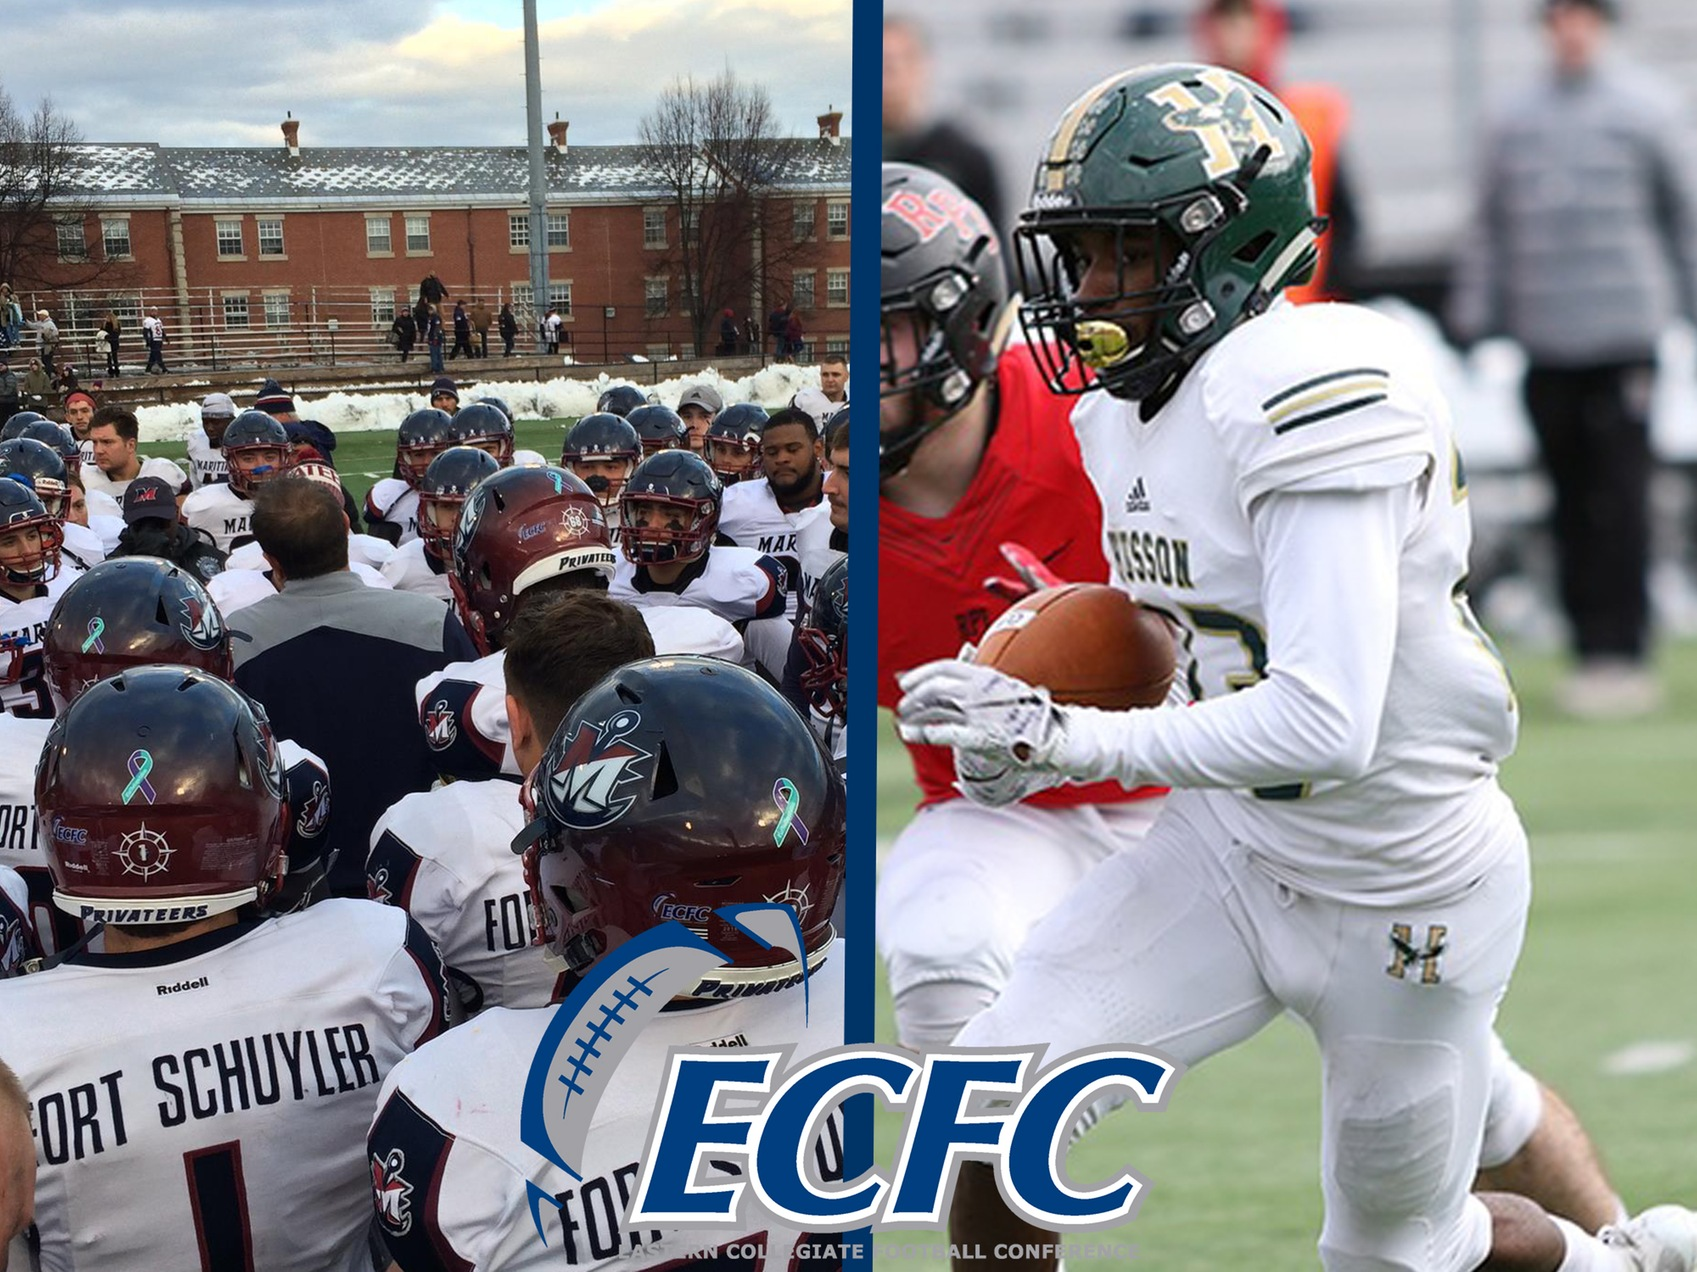 Husson & Maritime Fall in Postseason Contests